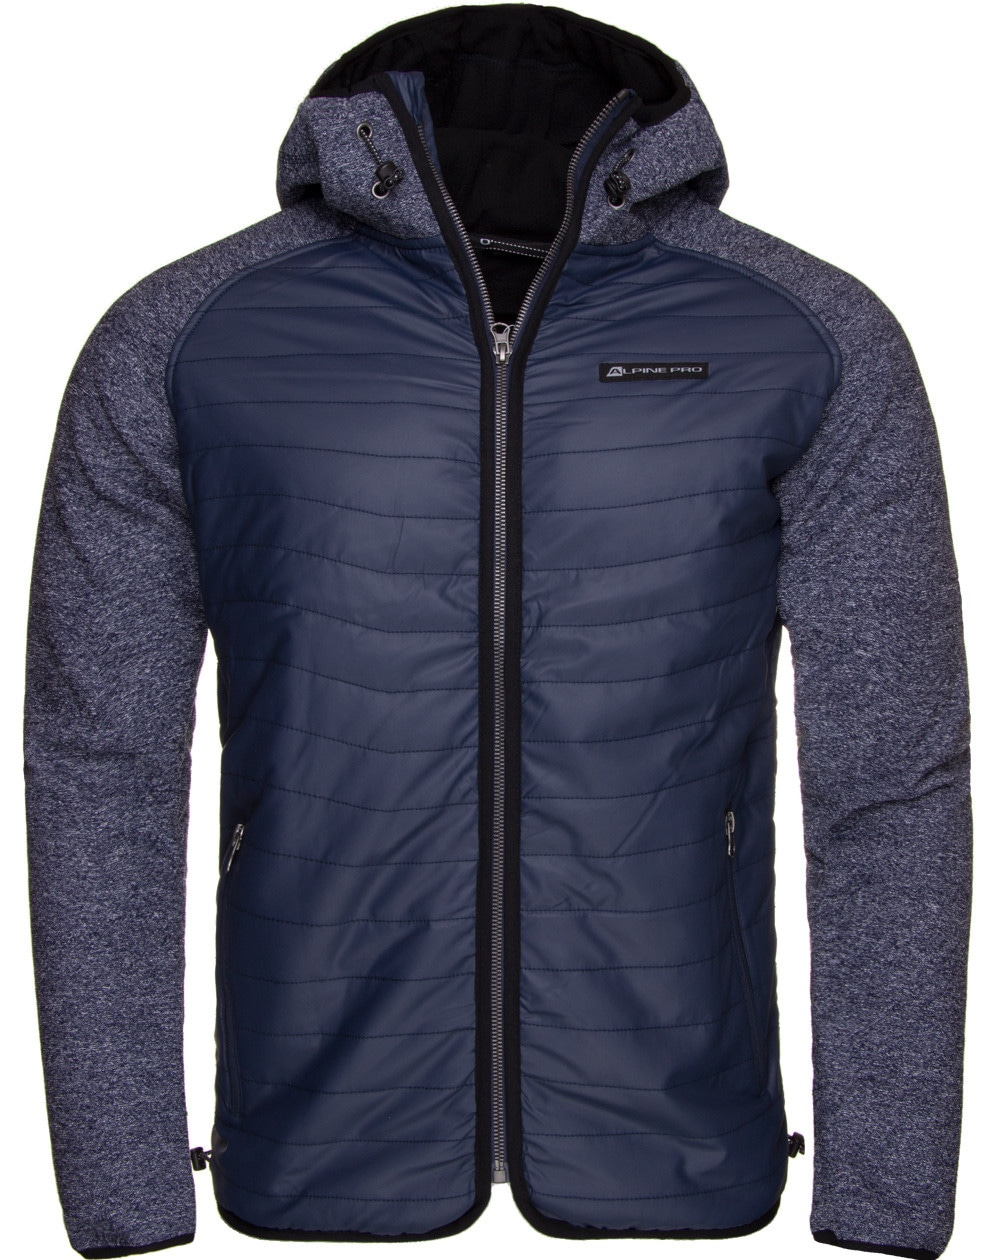 Men's jacket ALPINE PRO NISIF